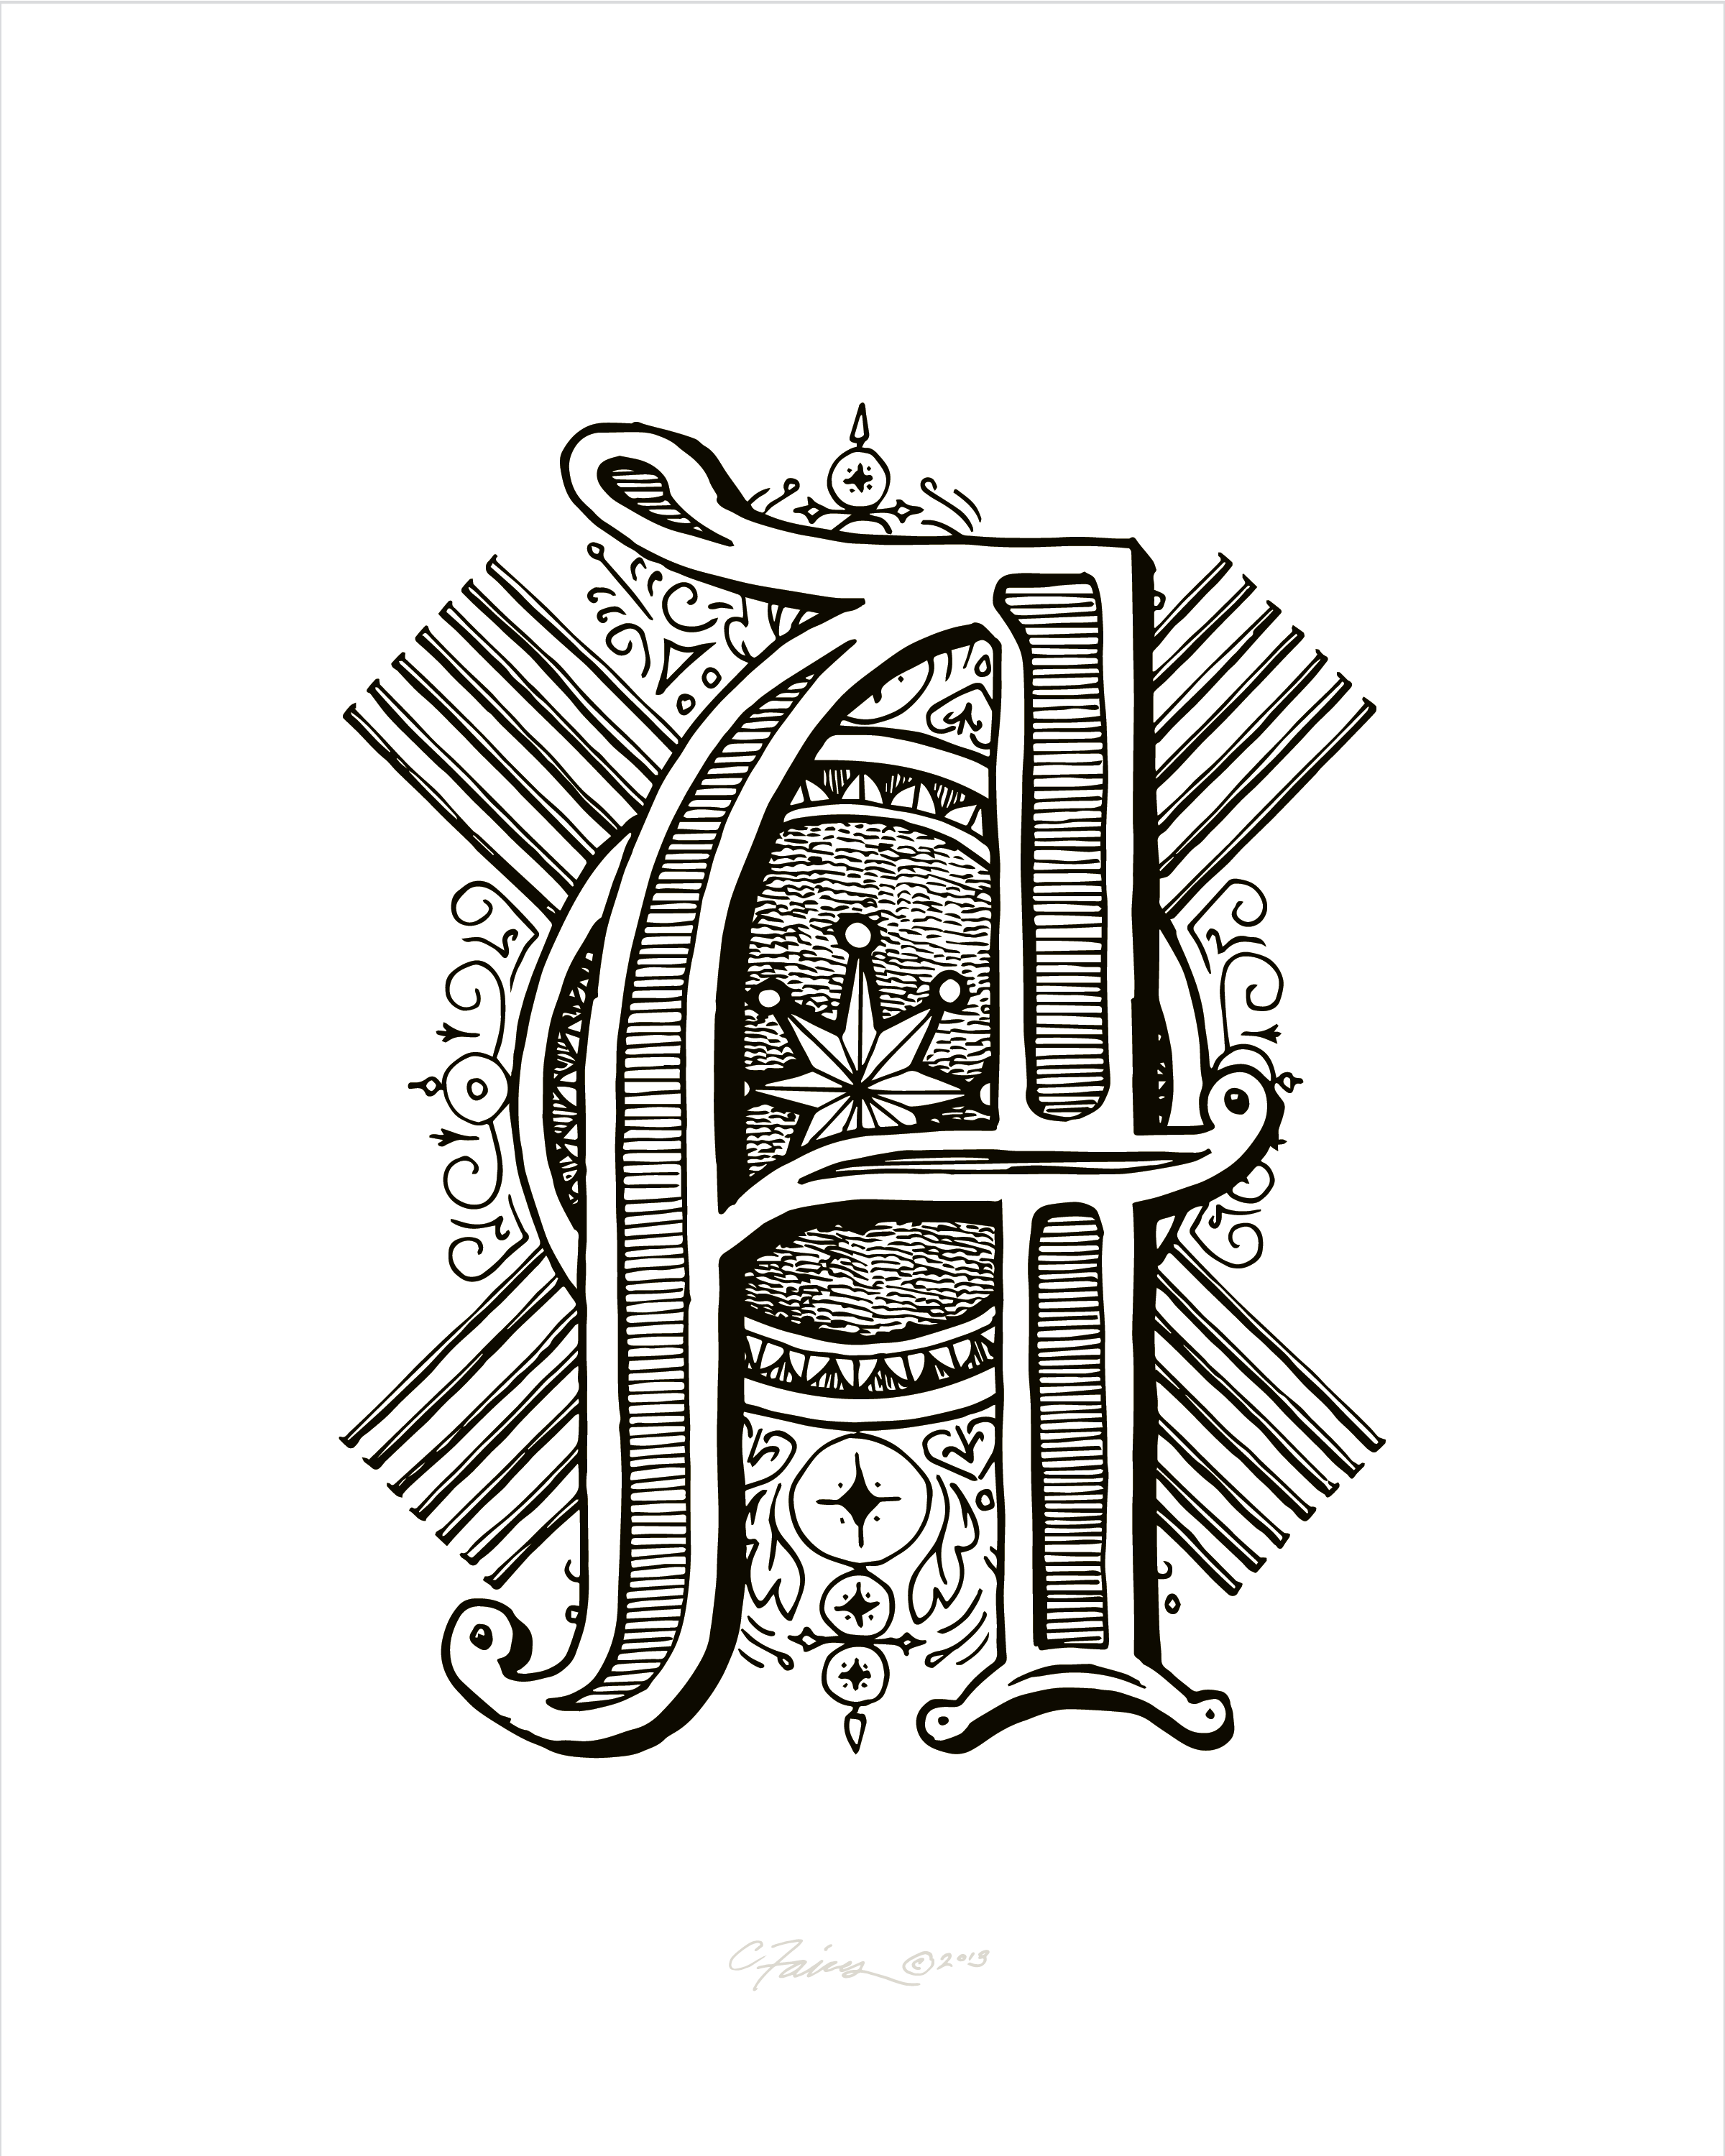 All Monograms-01.png